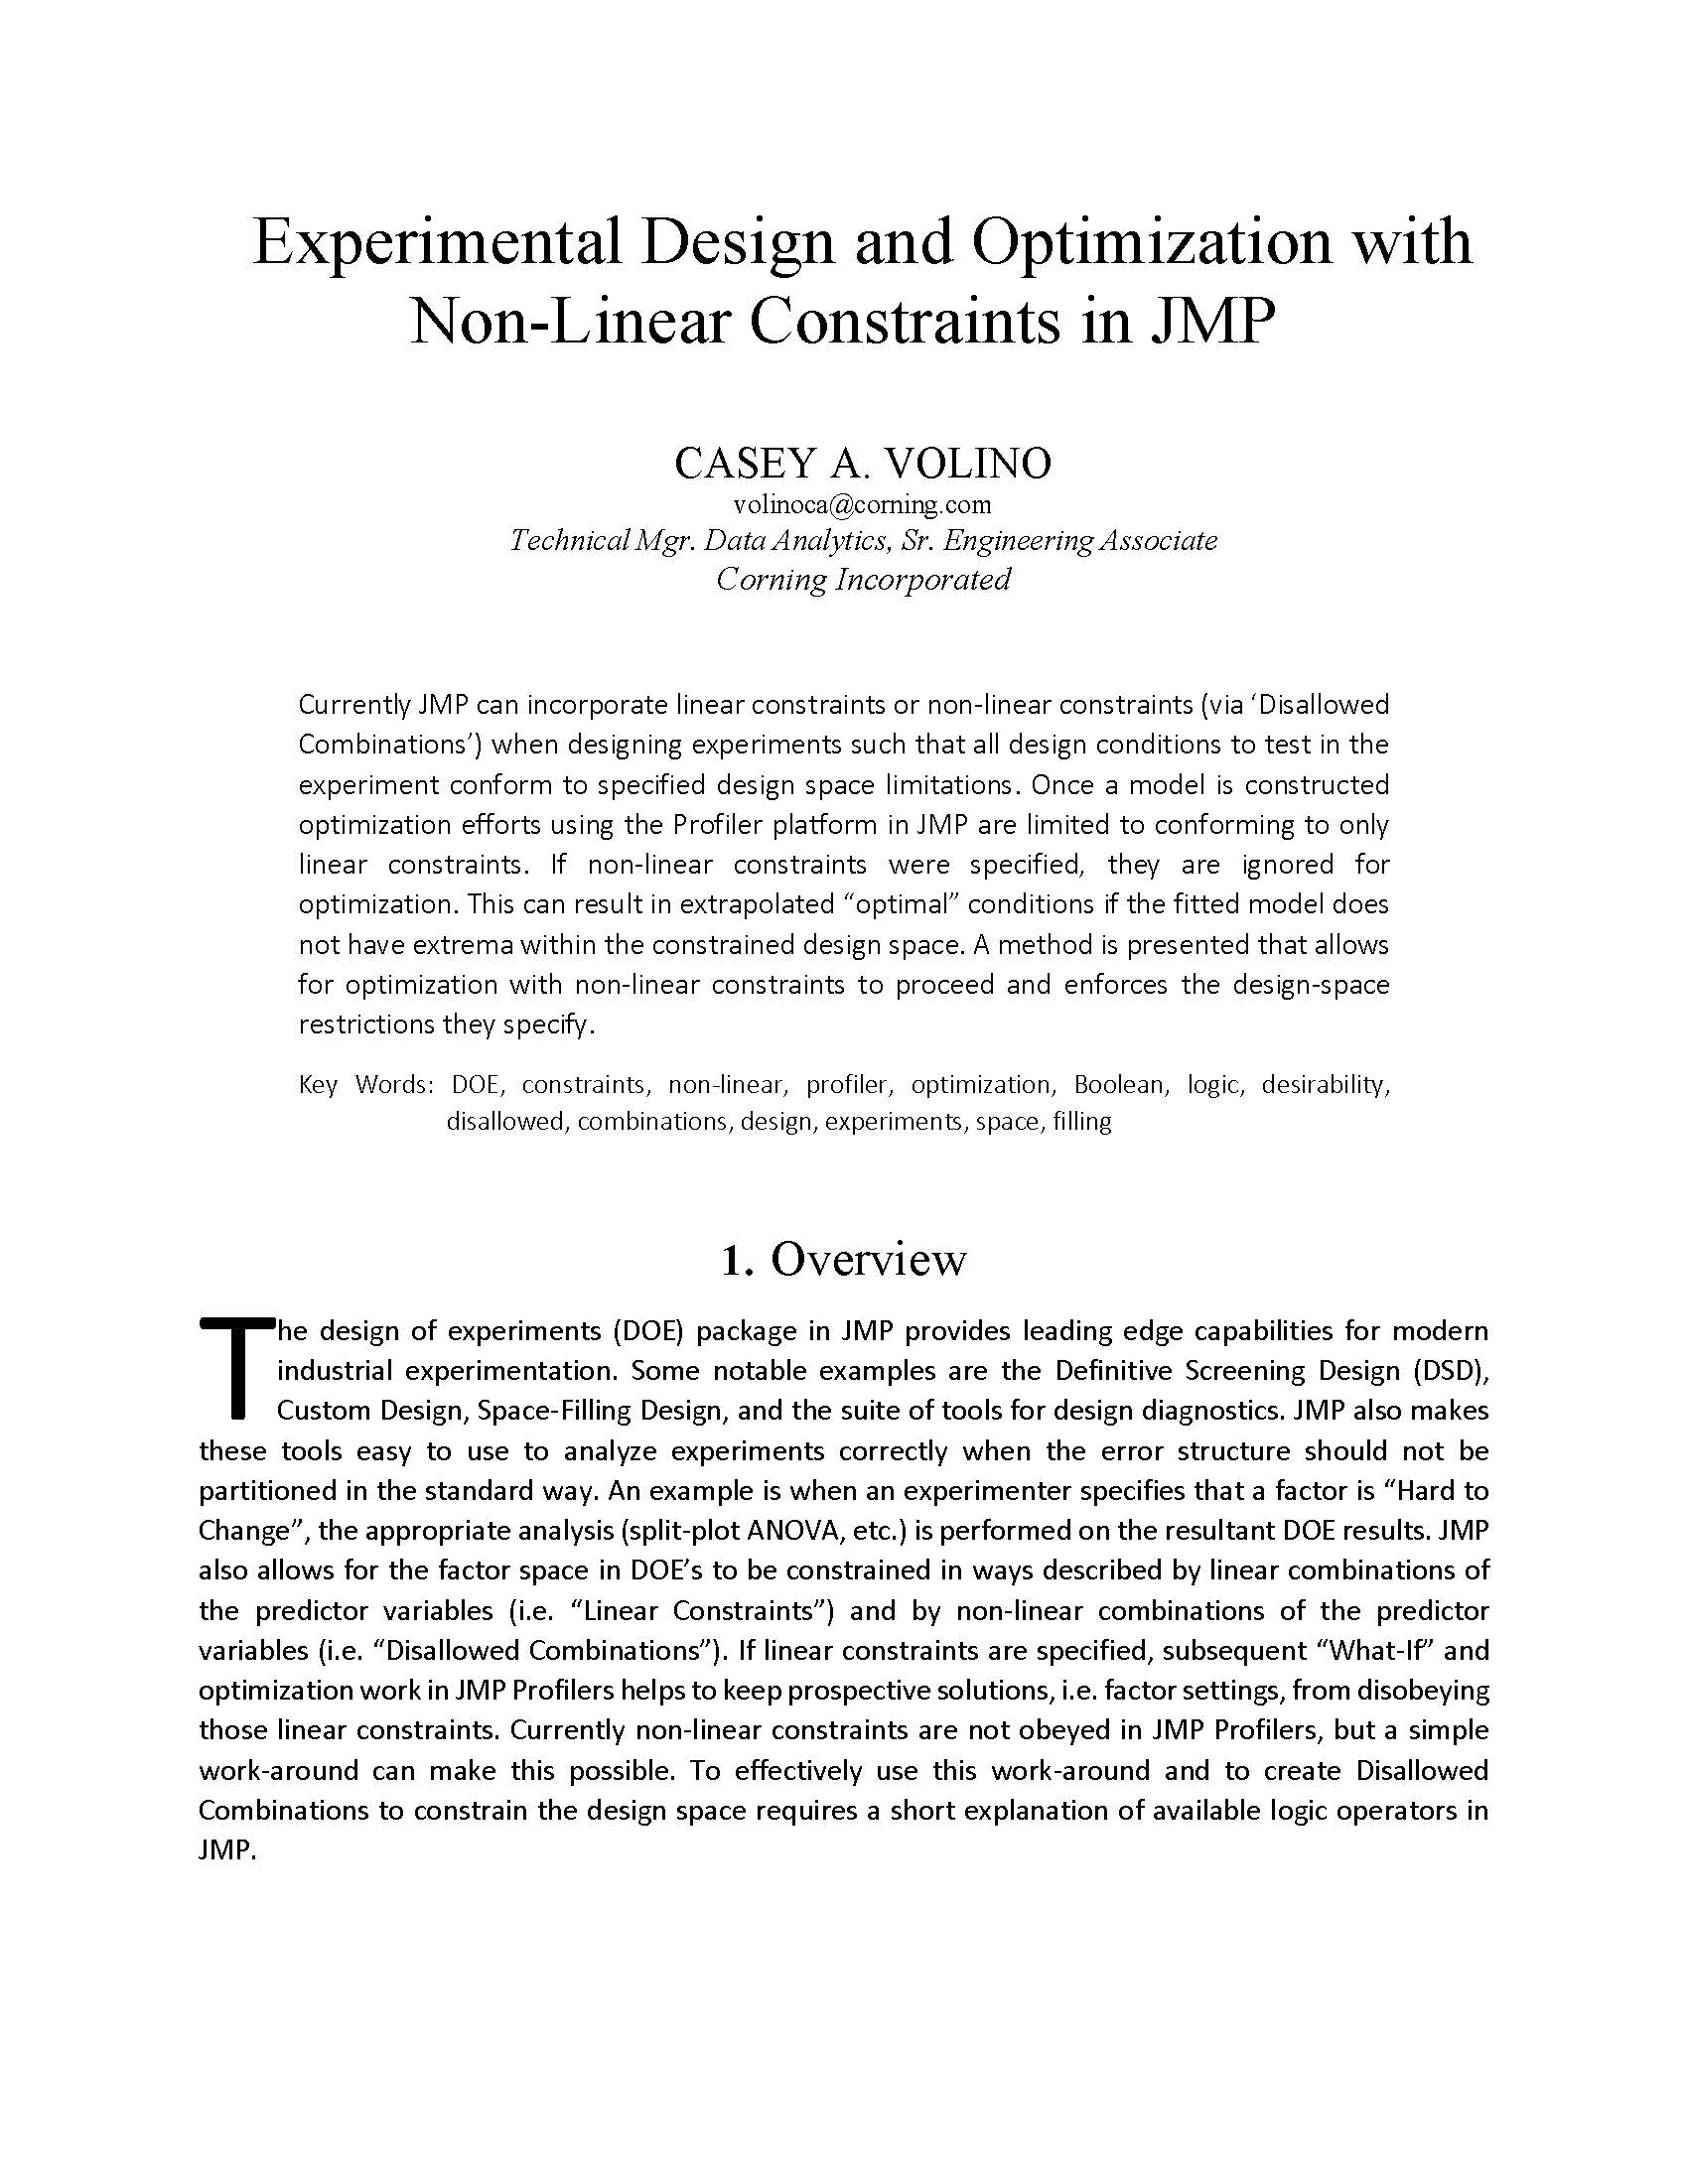 Design and Optimization With Nonlinear Constraints in …